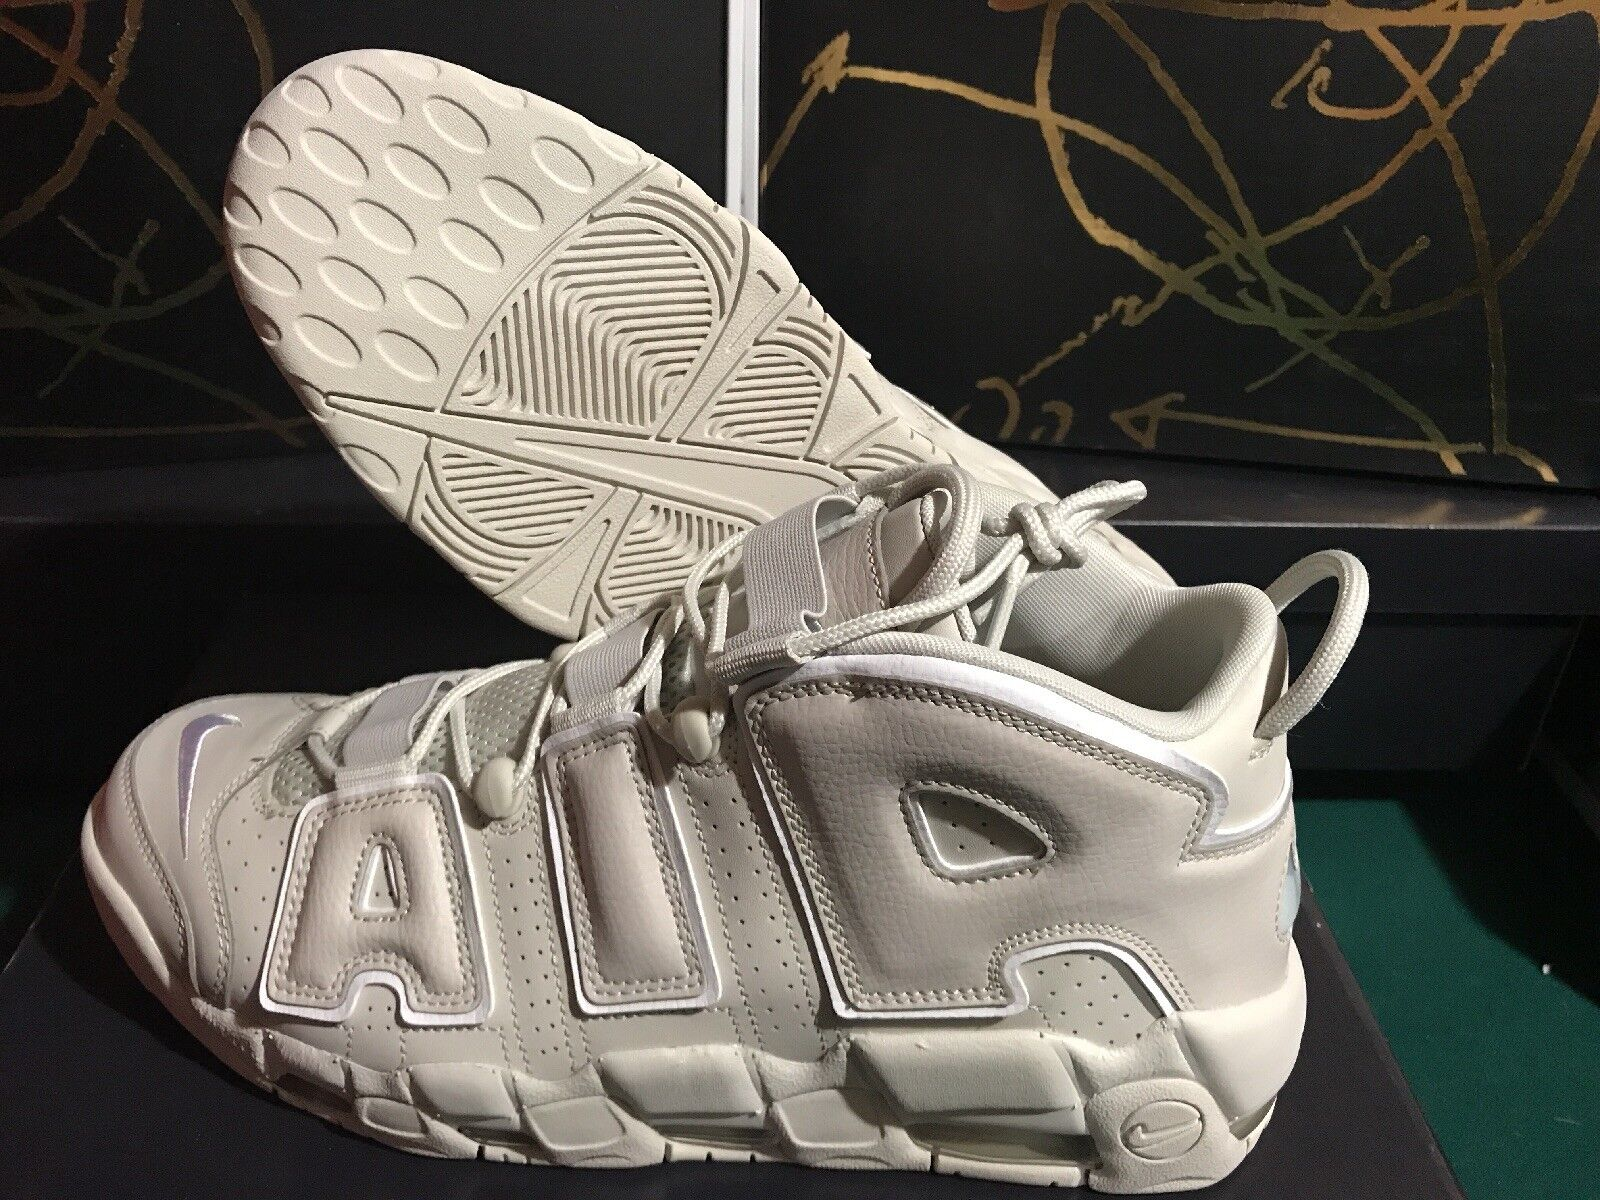 NIKE AIR MORE UPTEMPO '96 921948 001 LIGHT BONE/WHITE Price reduction - LEATHER Seasonal clearance sale